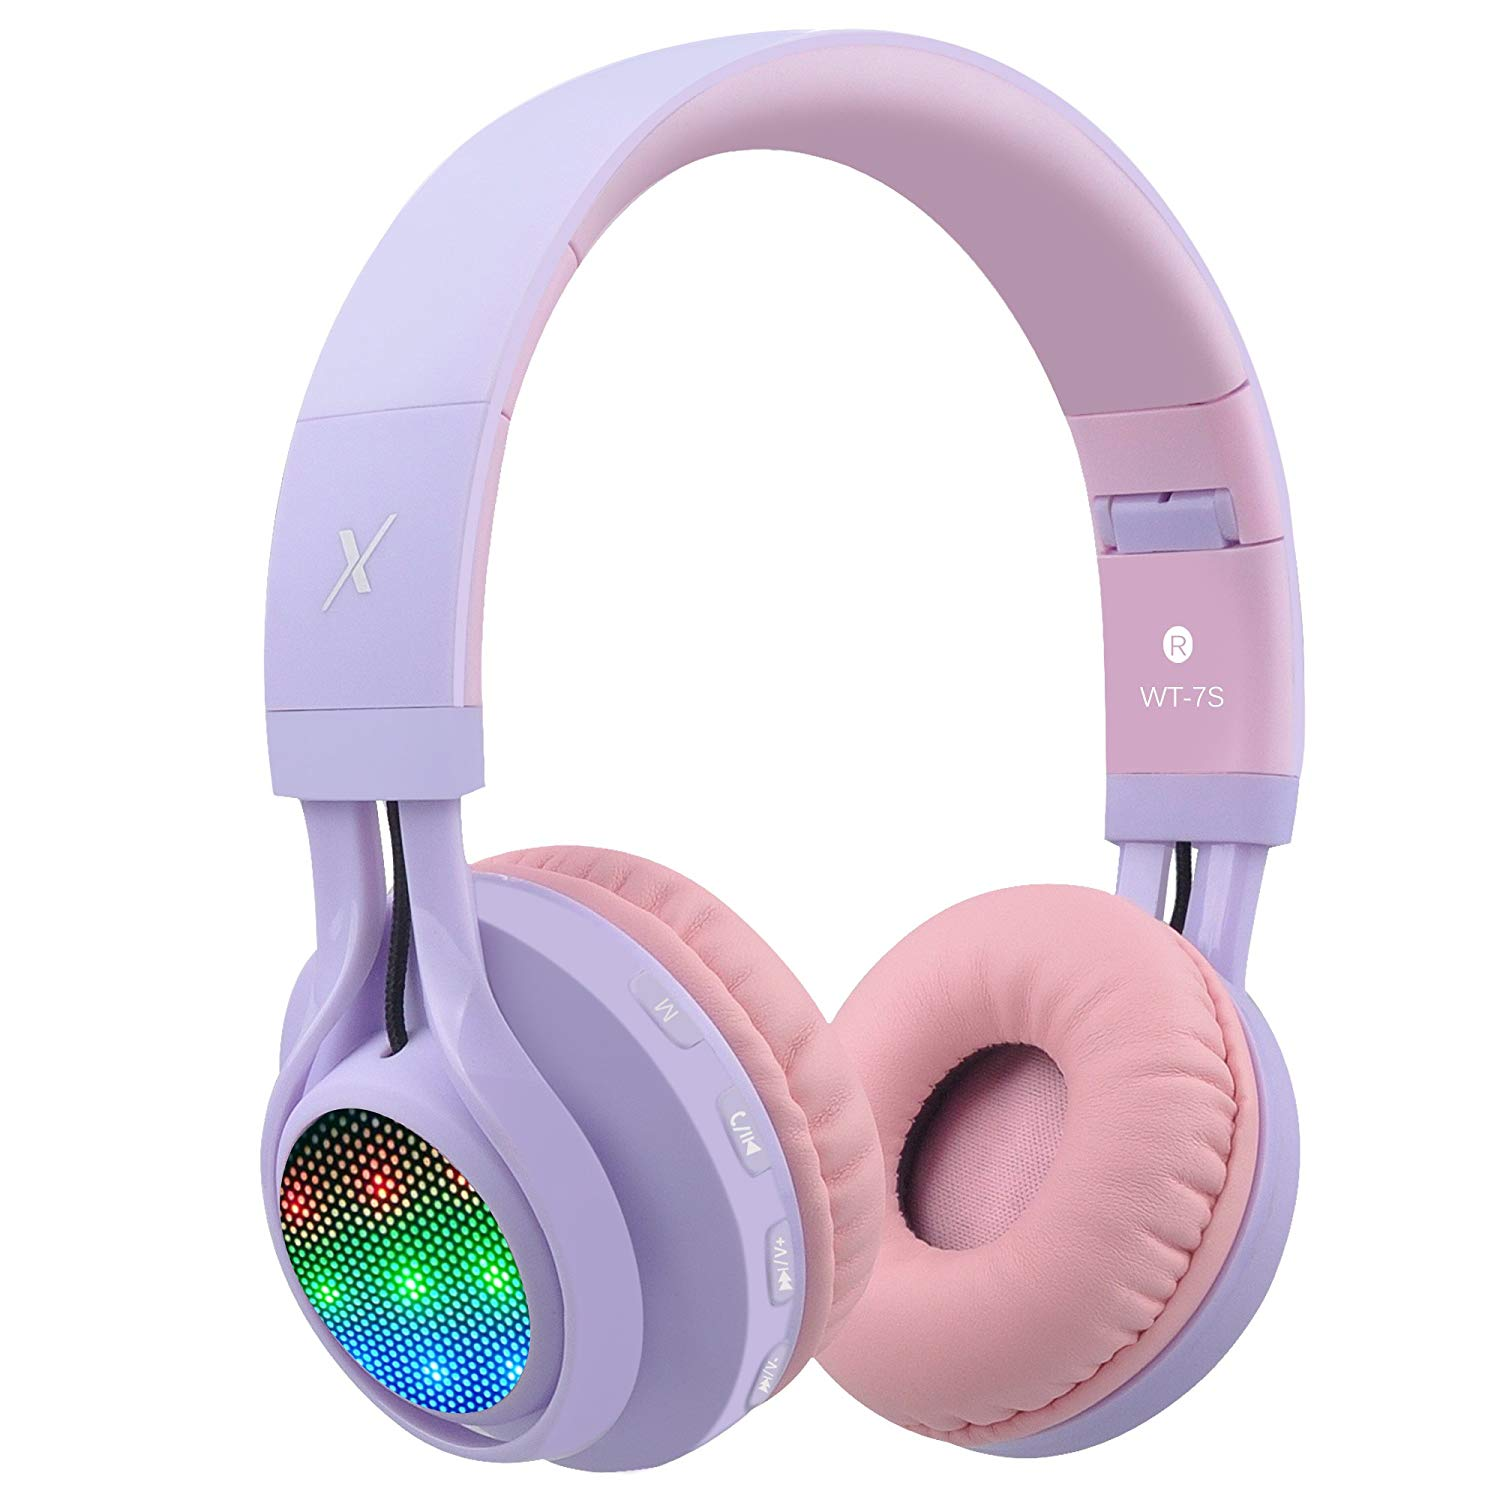 Riwbox WT-7S Bluetooth Headphones, LED Lingt Up Foldable Stereo wireless Headphones